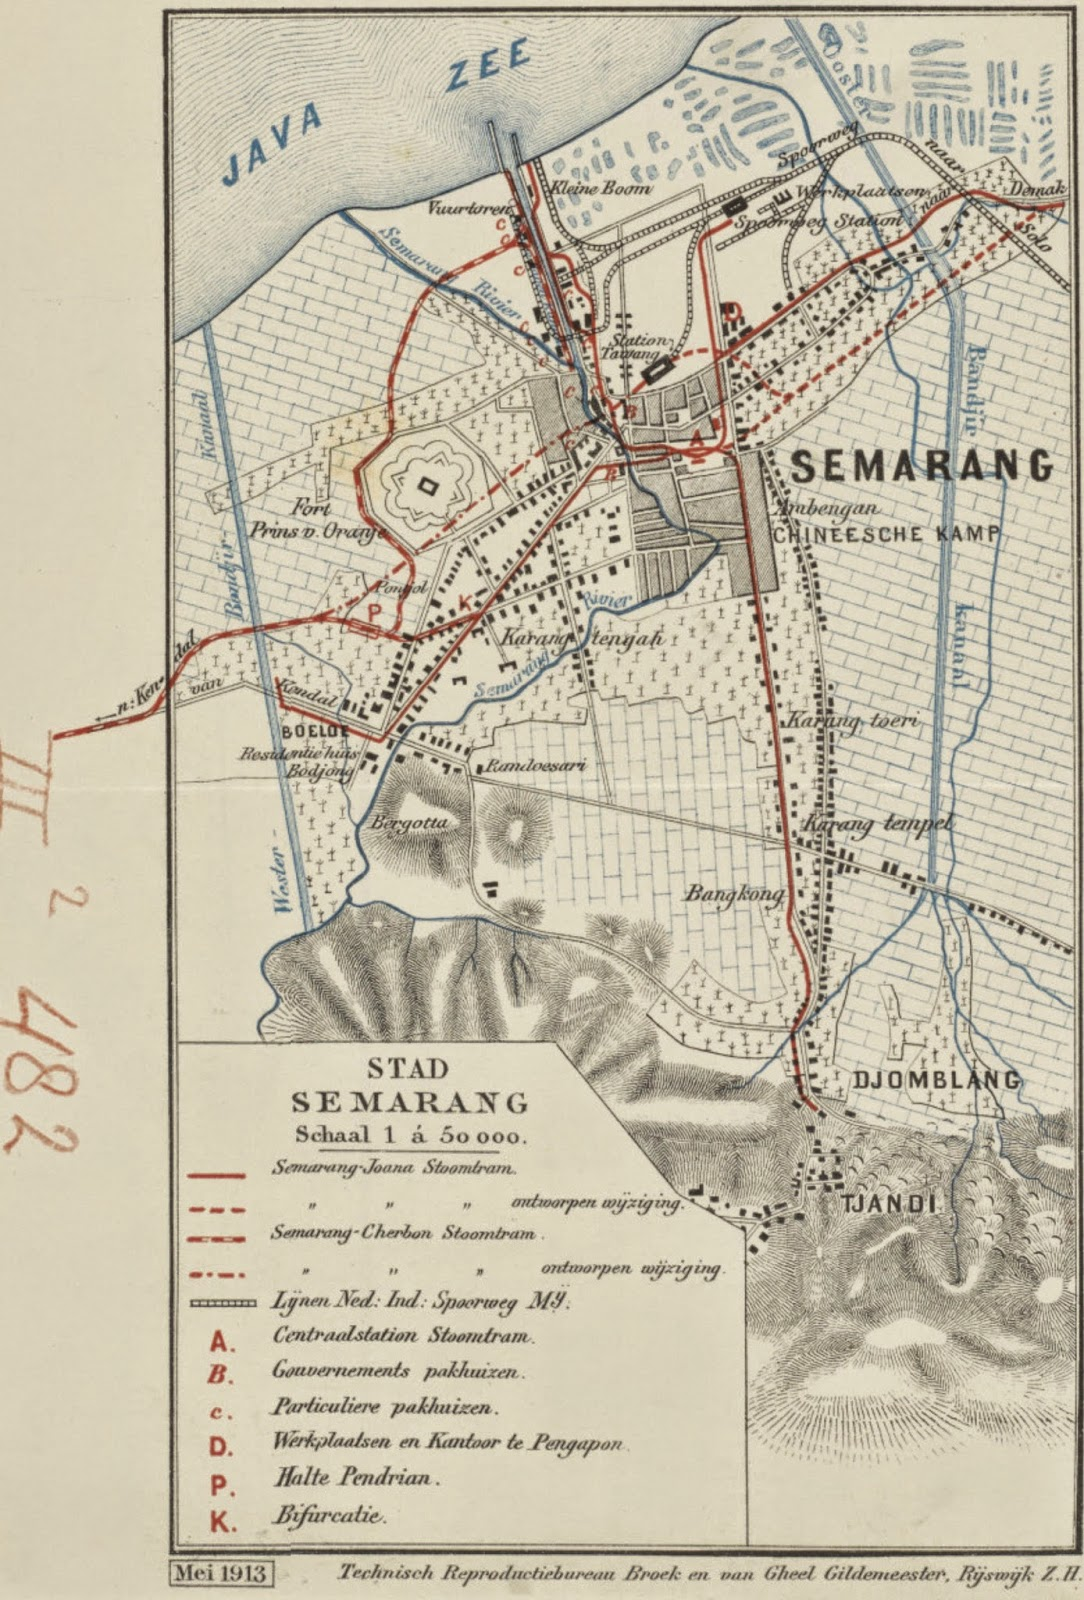 Indonesia 1920 Map To Make One Feel At Ease And Energetic Tosari East Java Pasuruan & Mount Bromo Malang & Environs